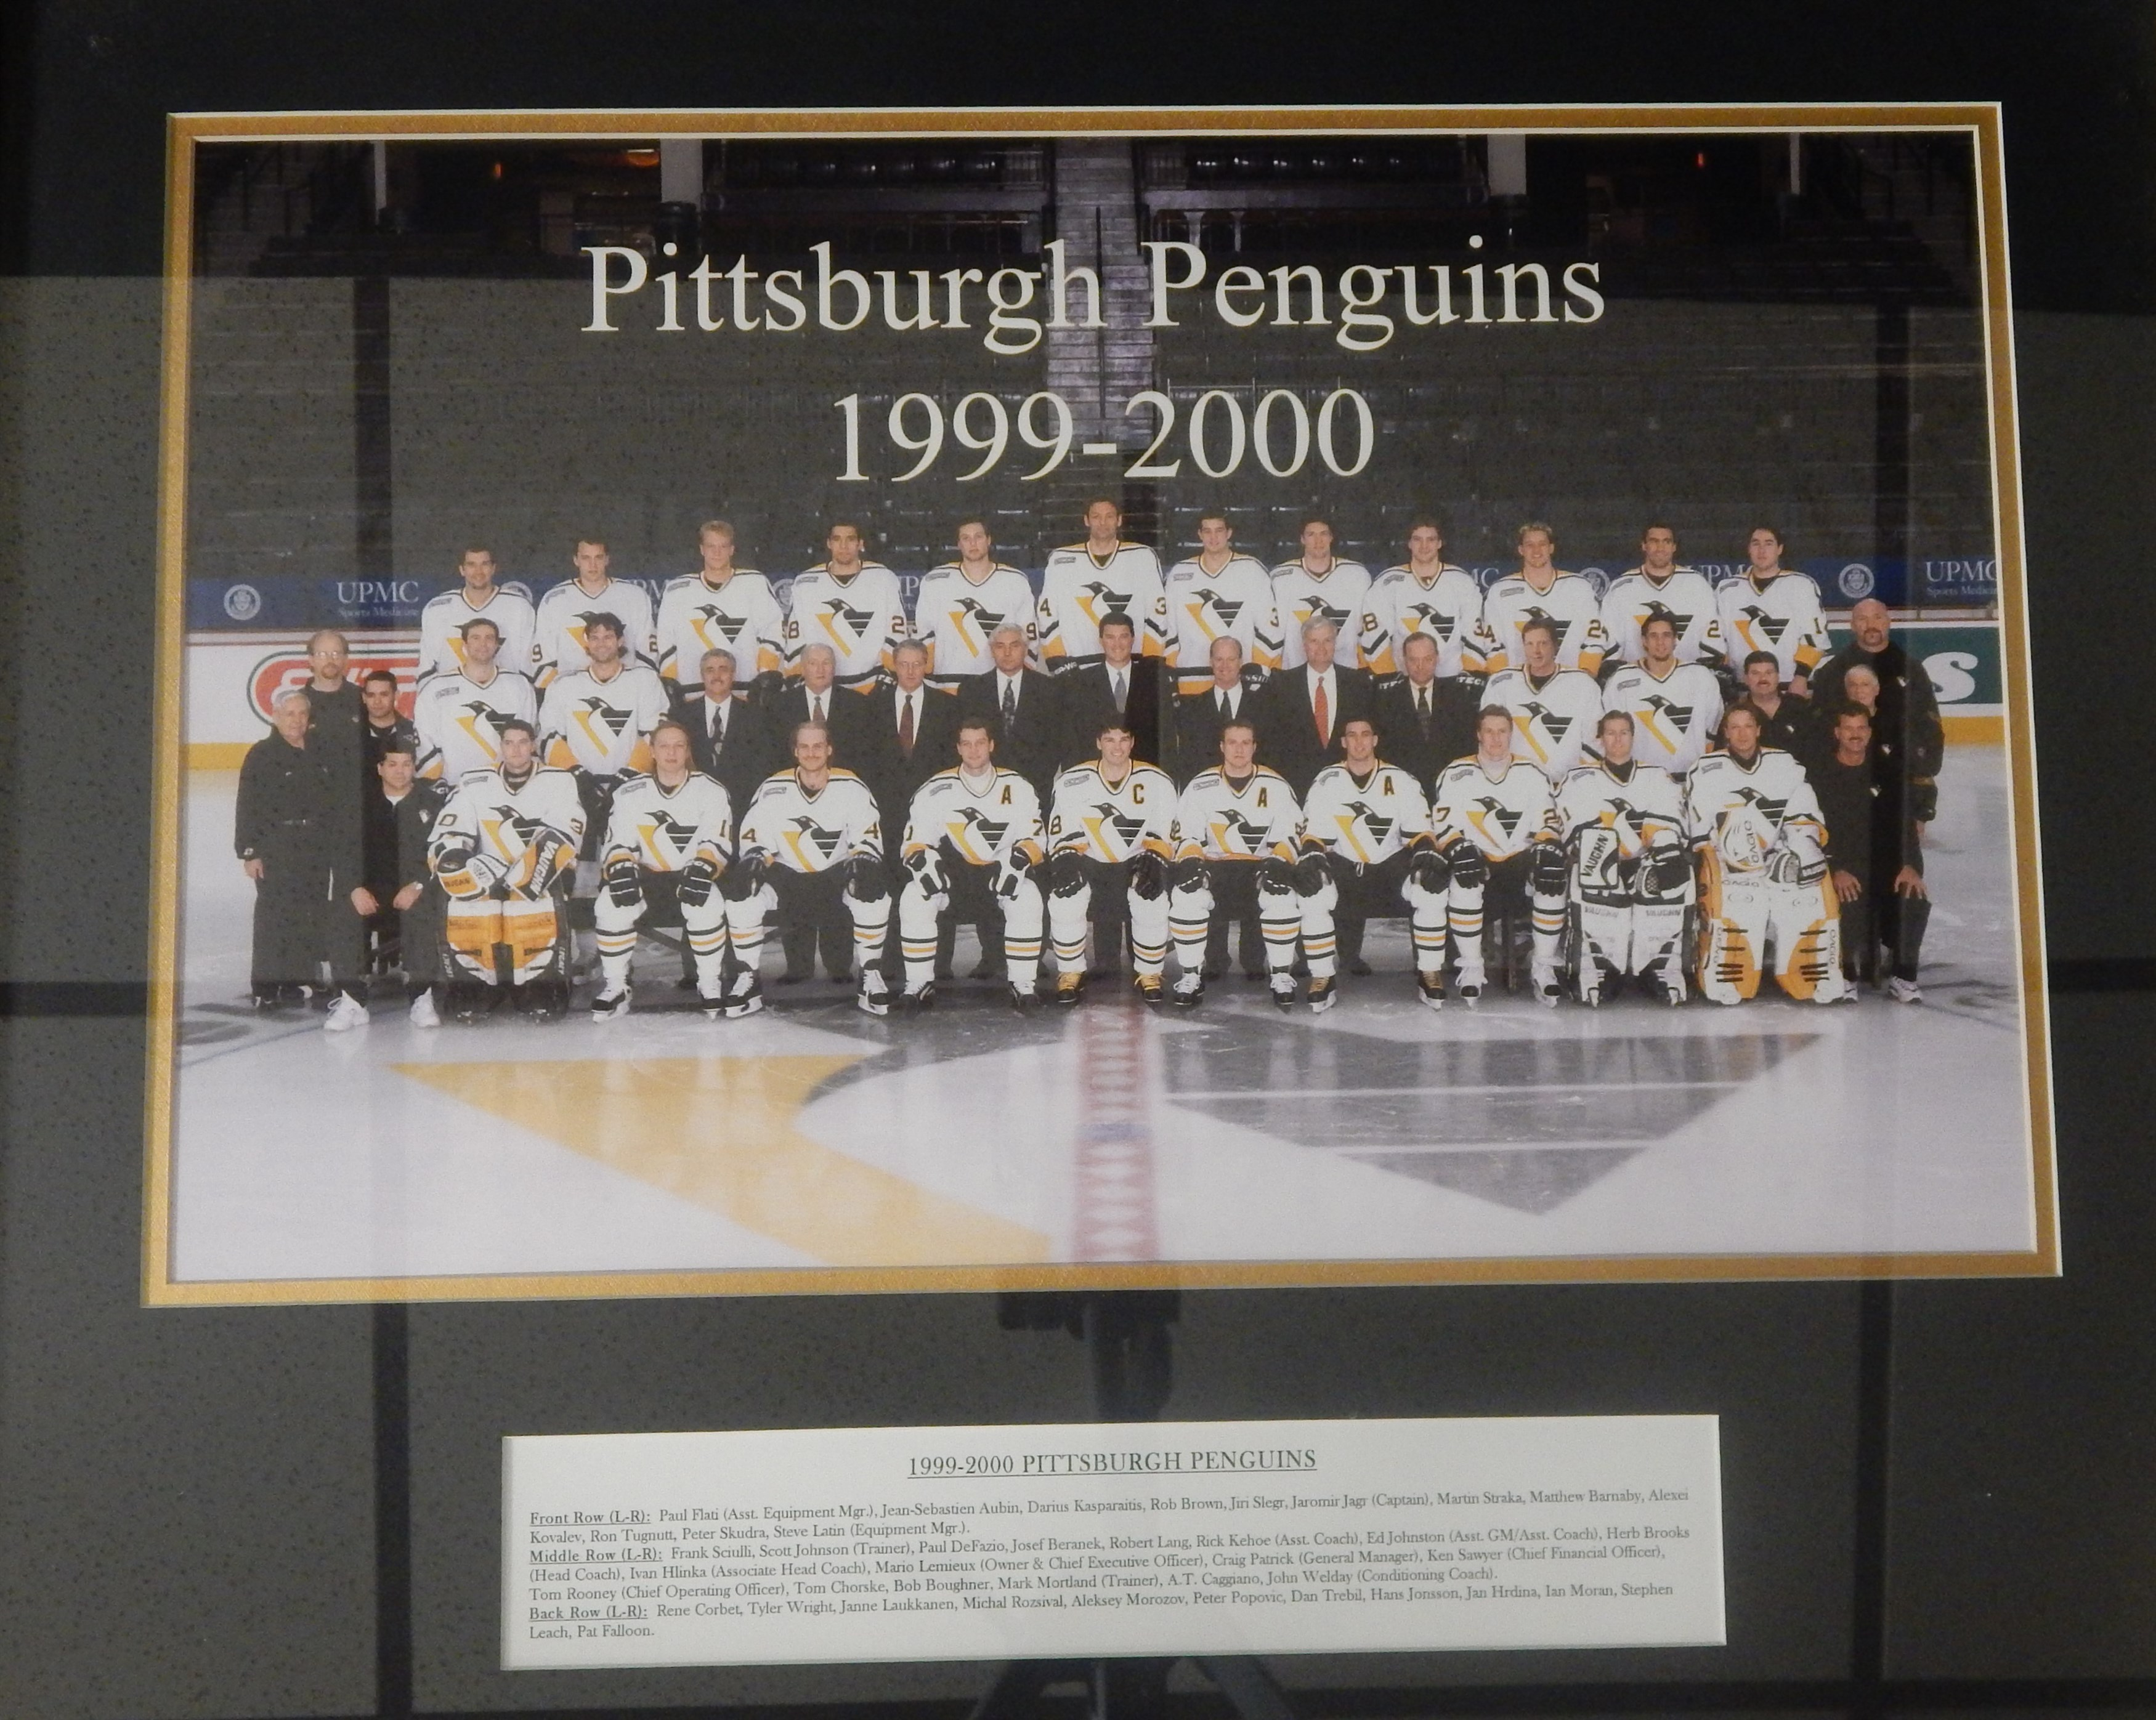 1999 Pittsburgh Penguins Team Photograph Once Hung in Civic Center (ex-Pitt Penguins Exec)